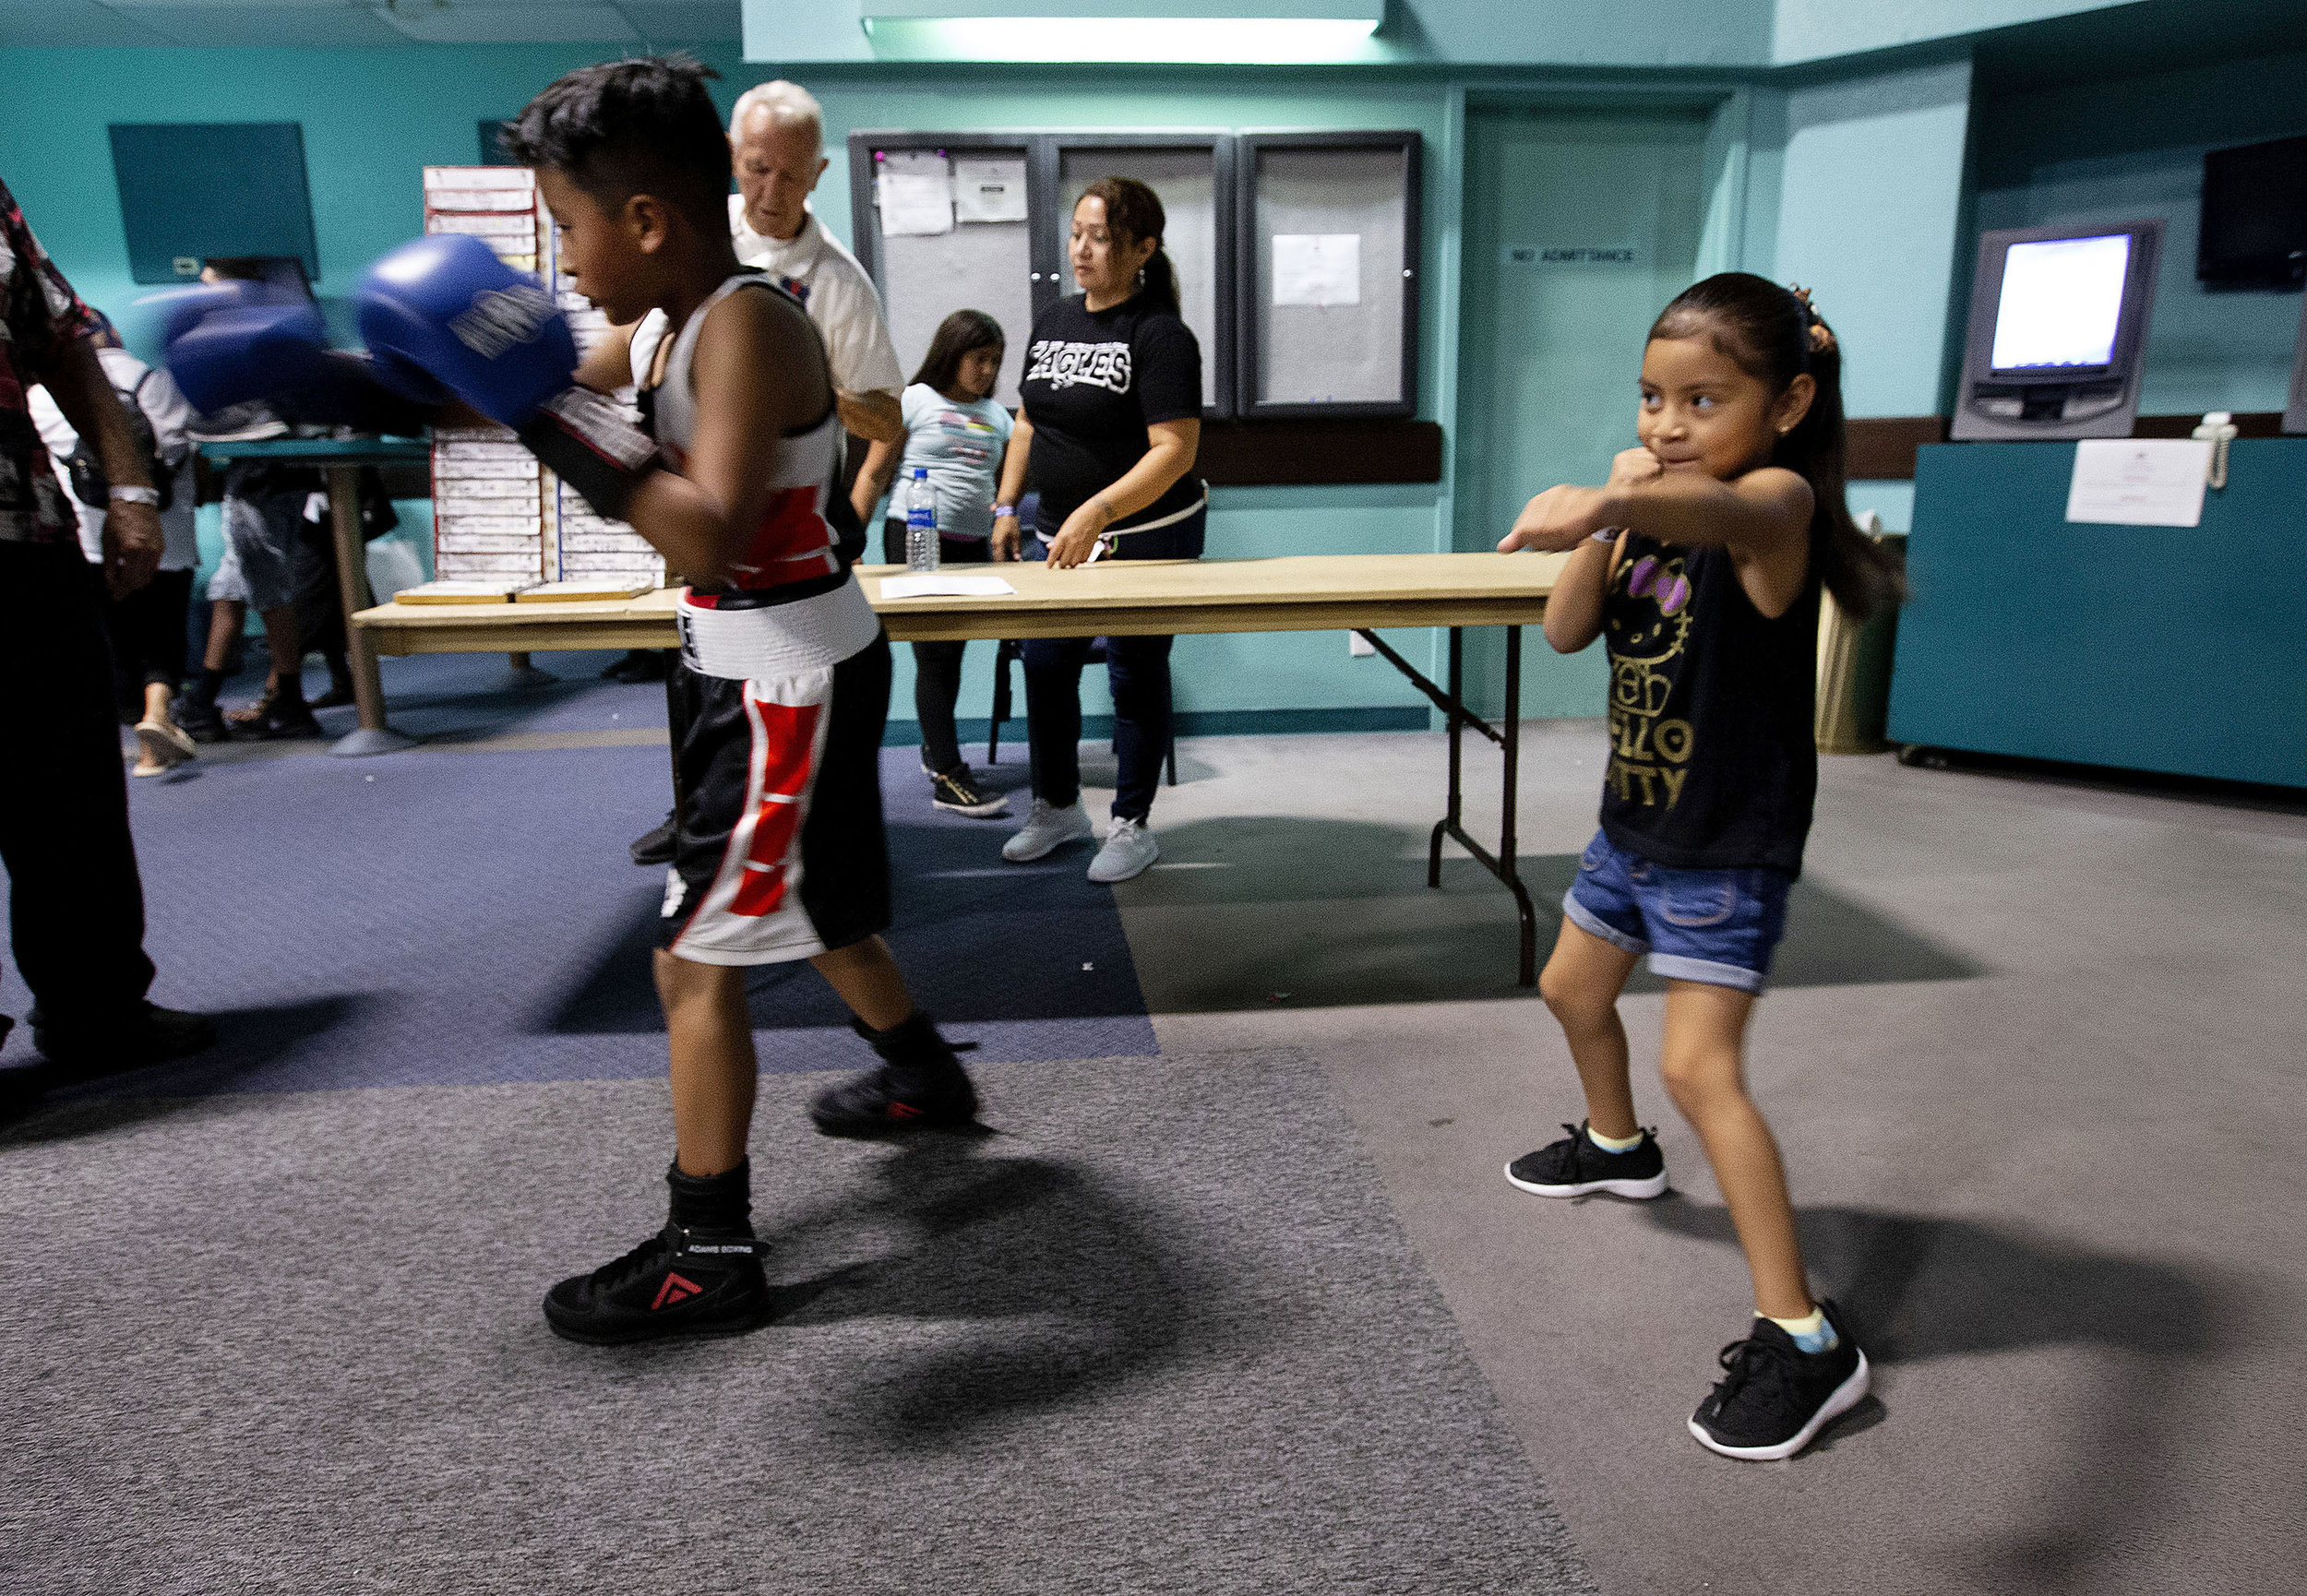 United Boxing Academy boxer Evan Nahuat, 9, left shadow boxes as does his sister Mia Nahuat, 5, both of Moreno Valley minutes before his bout during the Future Olympics Champions at  Lake Perris Sports Pavilion in Perris on Saturday, August 18, 2018.